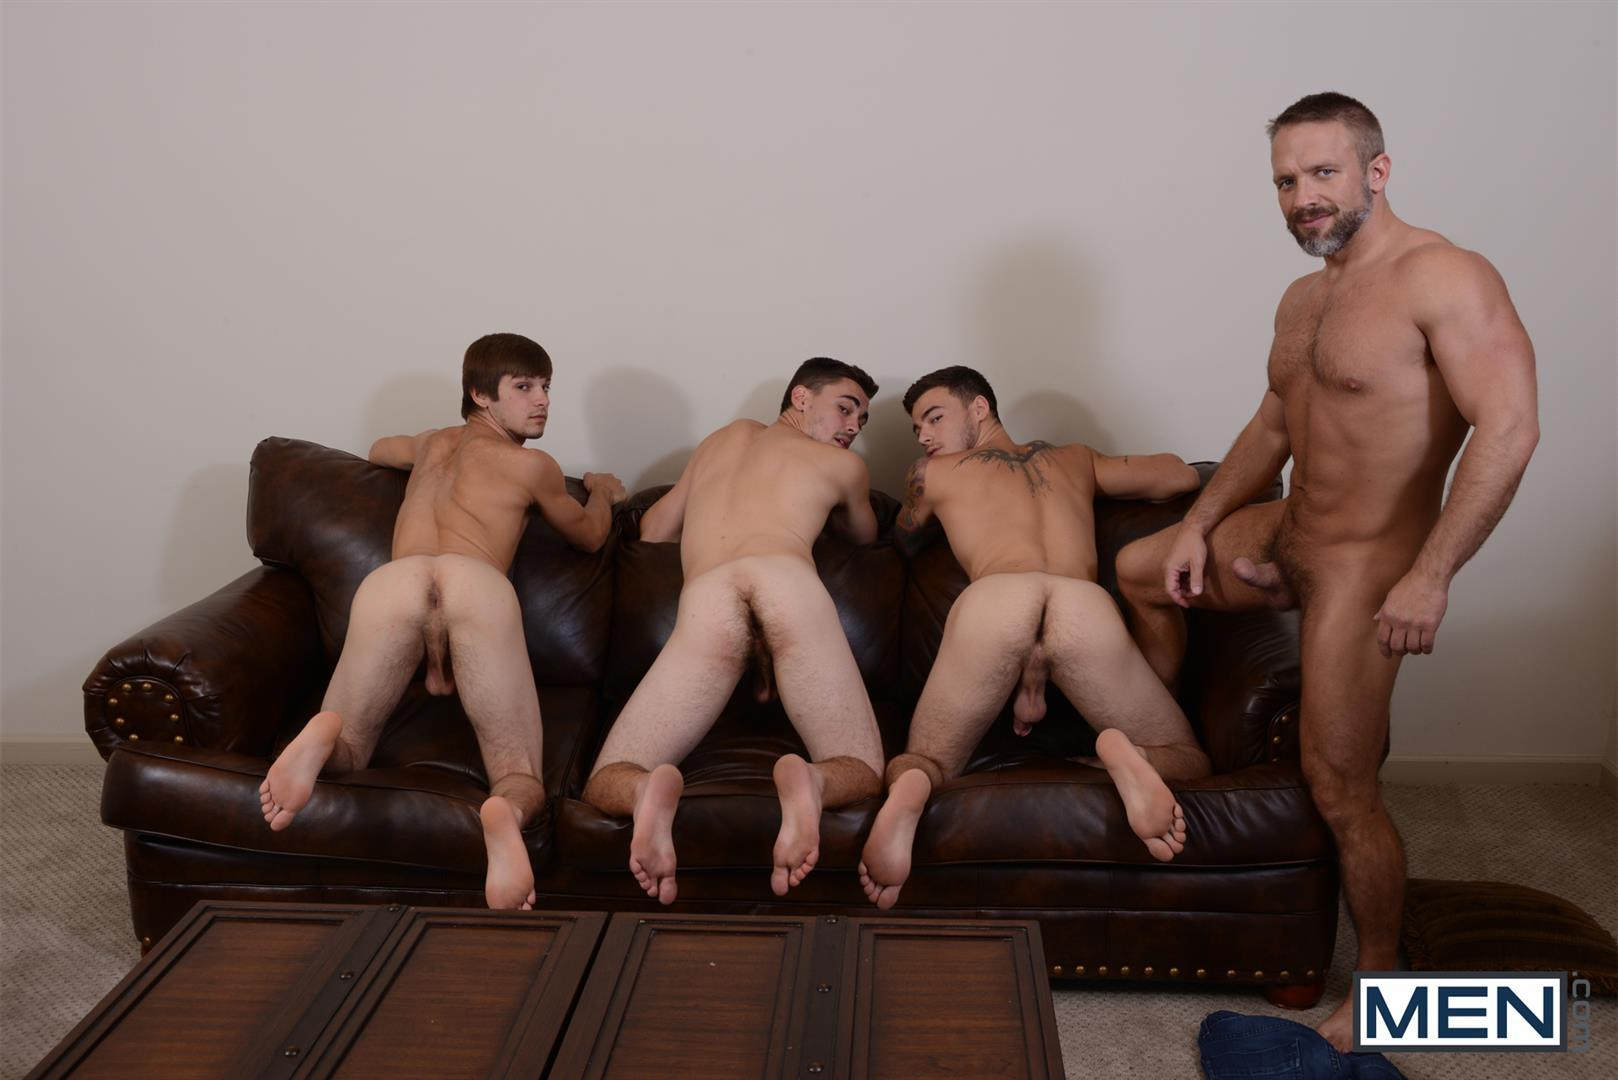 orgy amateur gay bedroom